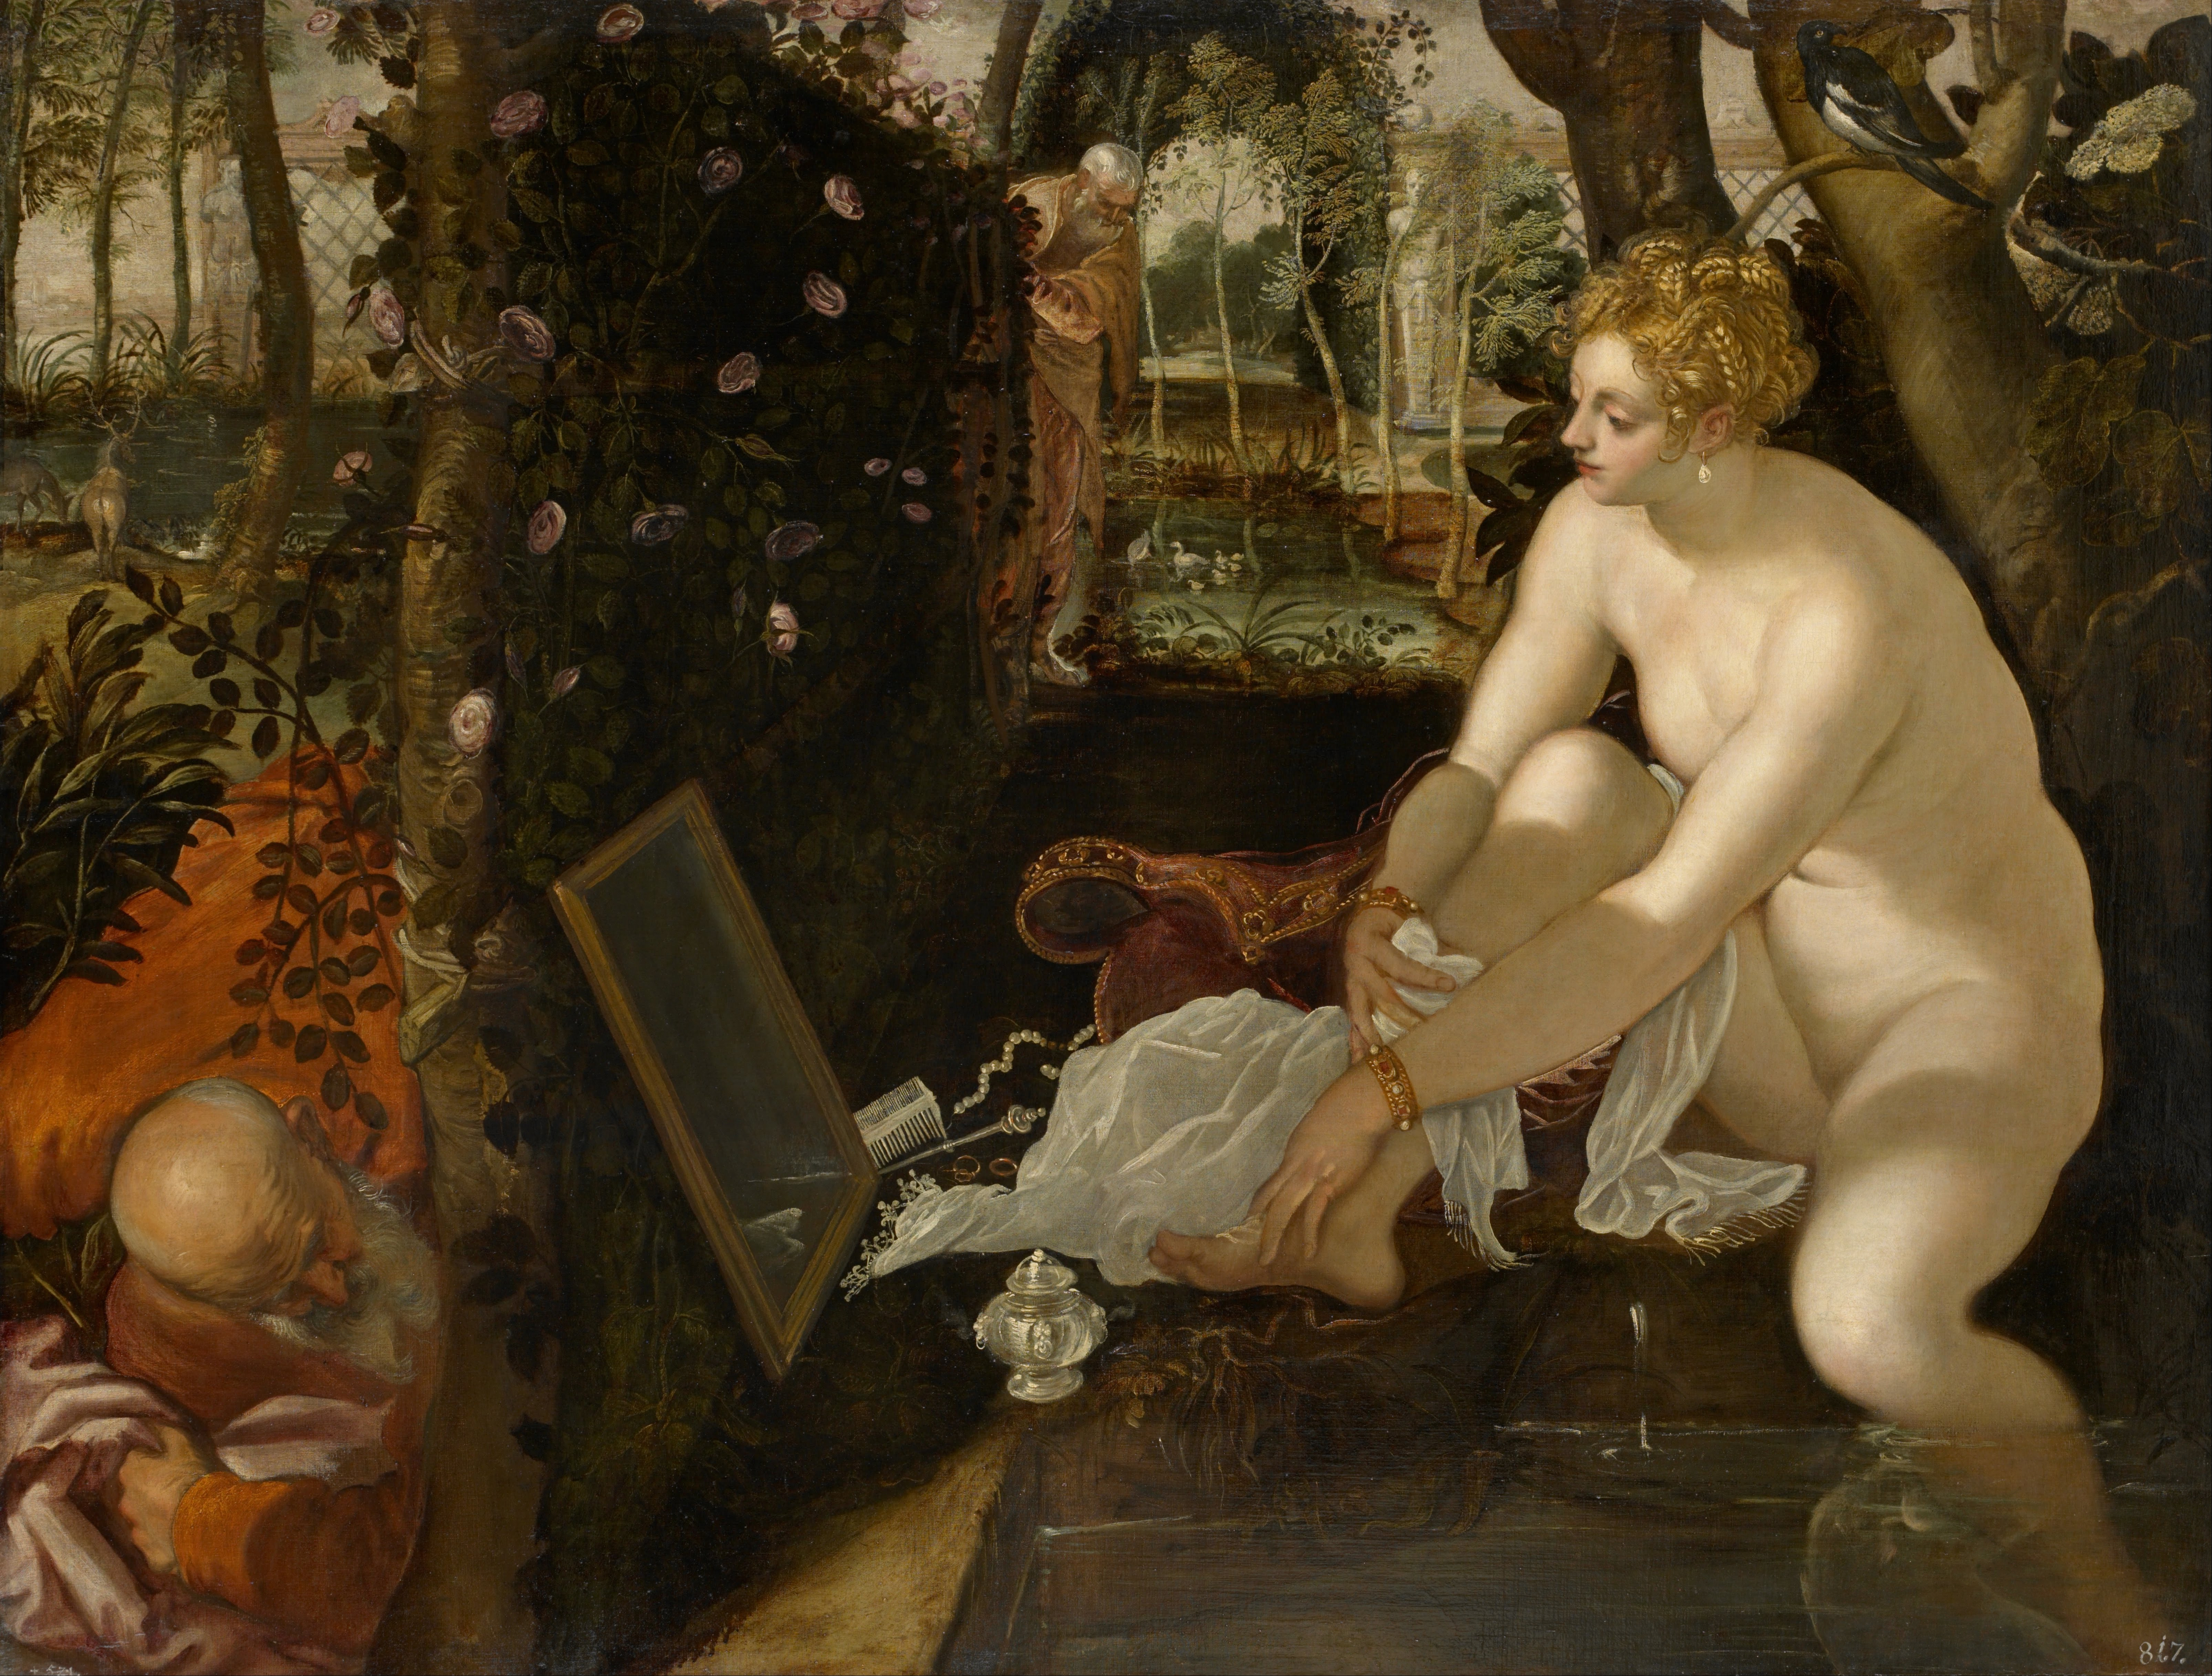 Tintoretto, Susanna and the Elders, 1555-1556